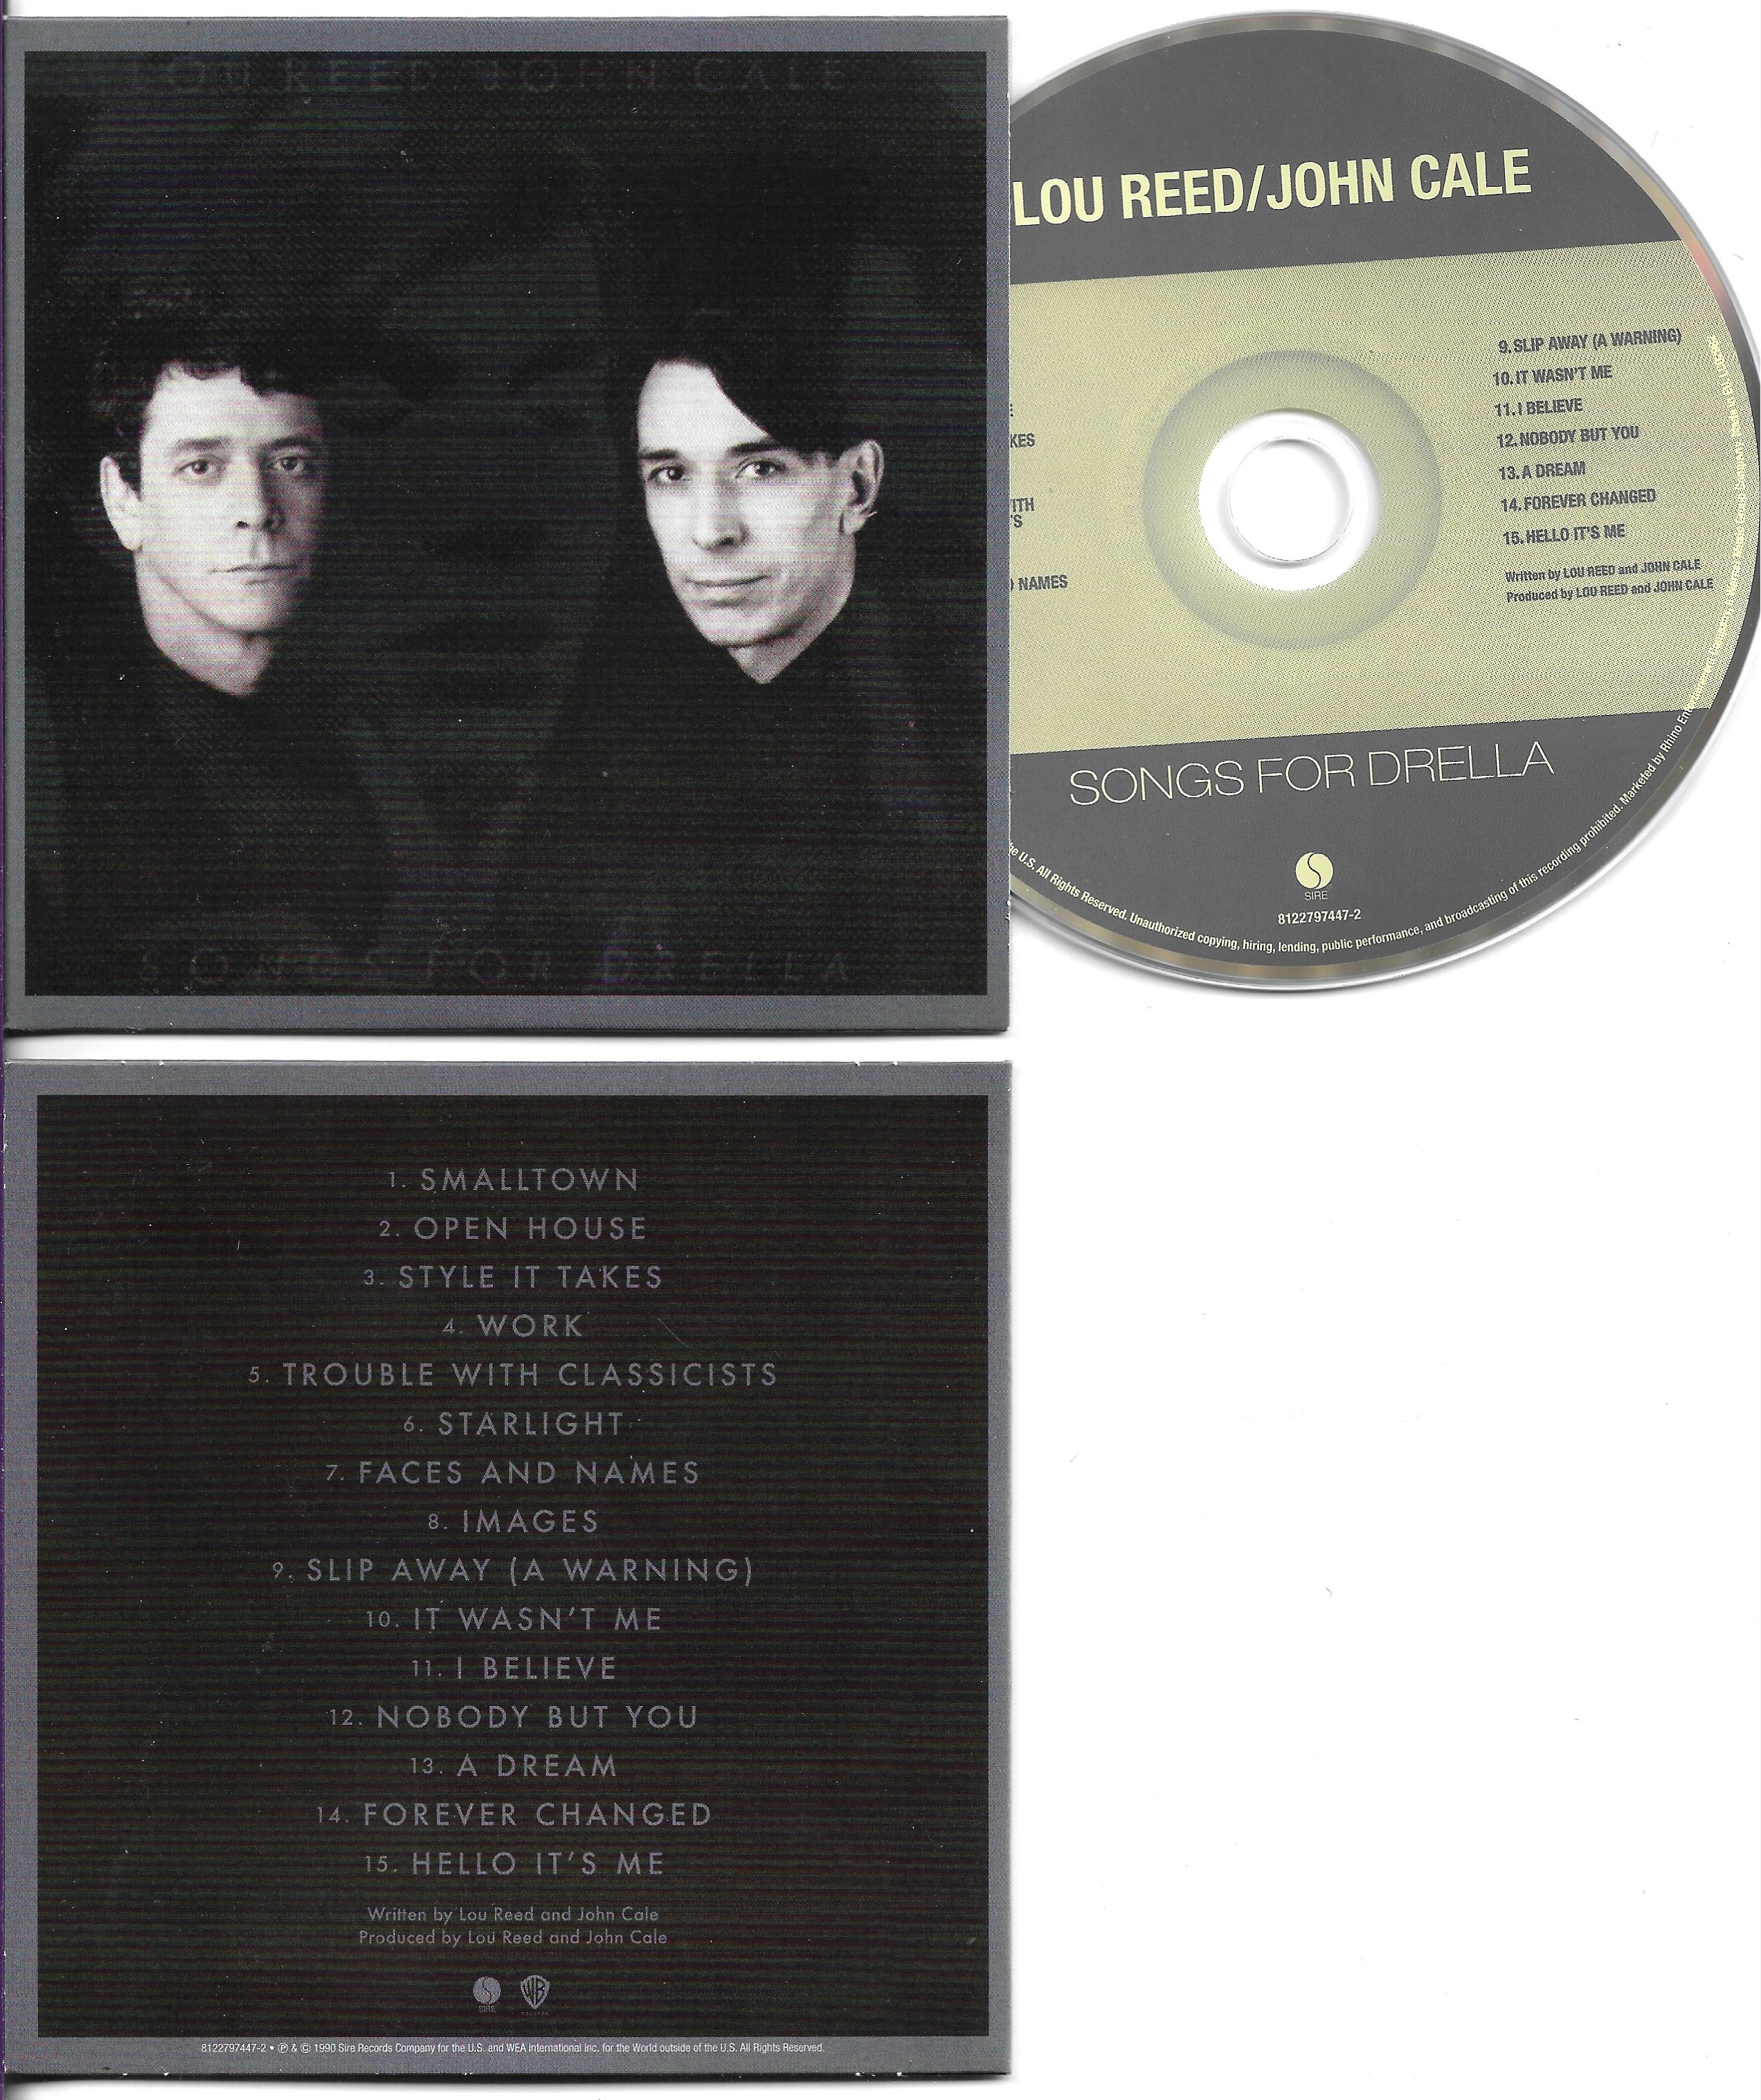 Lou REED & John CALE - Songs For Drella - Mini Lp Replica - 15-track Card Sleeve